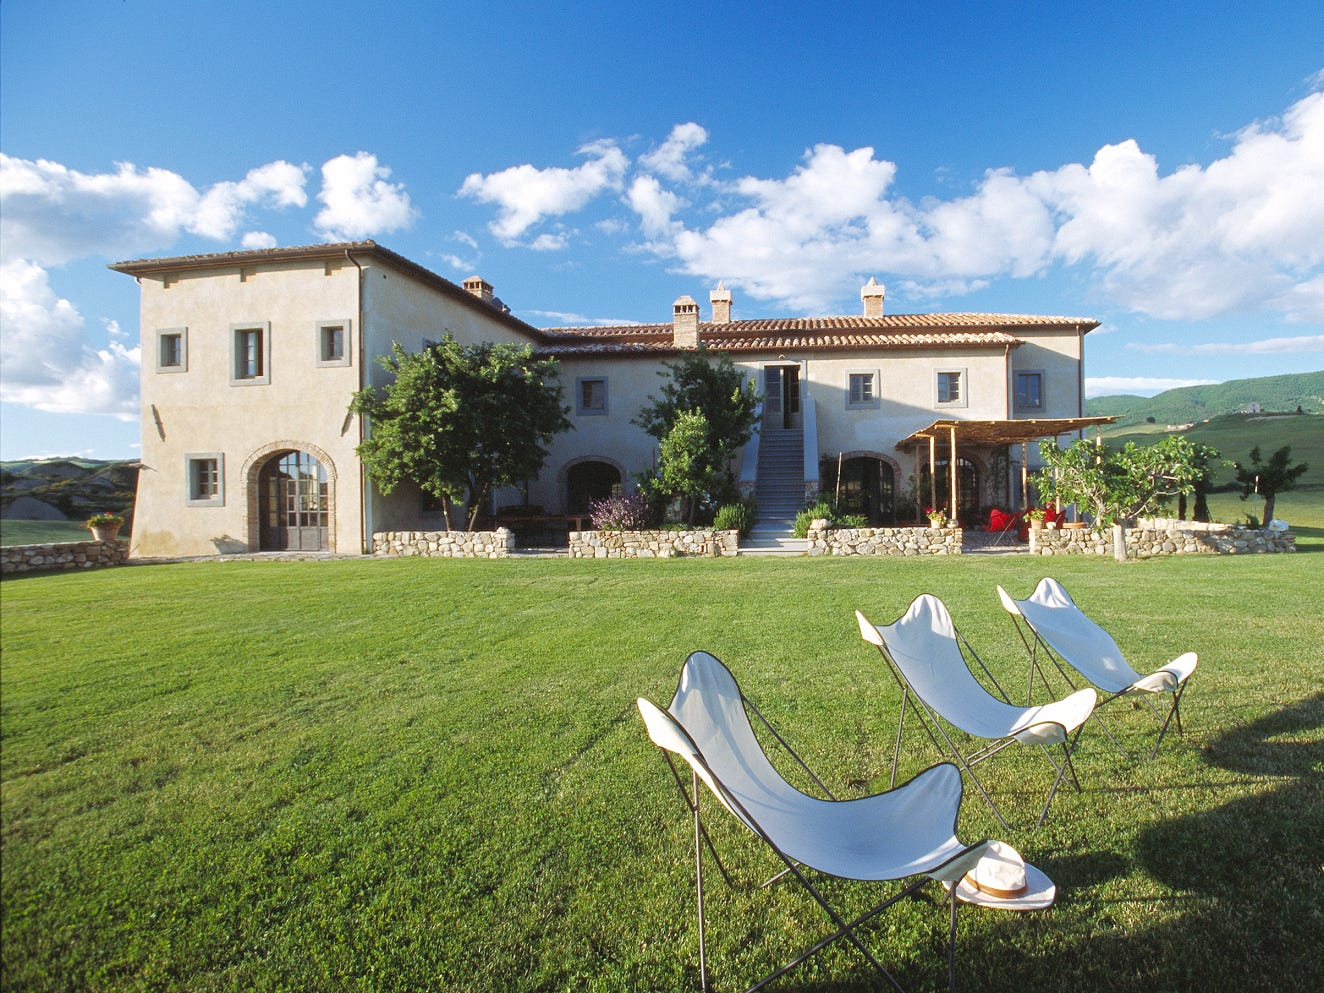 This villa in Val d'Orcia has 8 bedrooms and 8.5 baths.